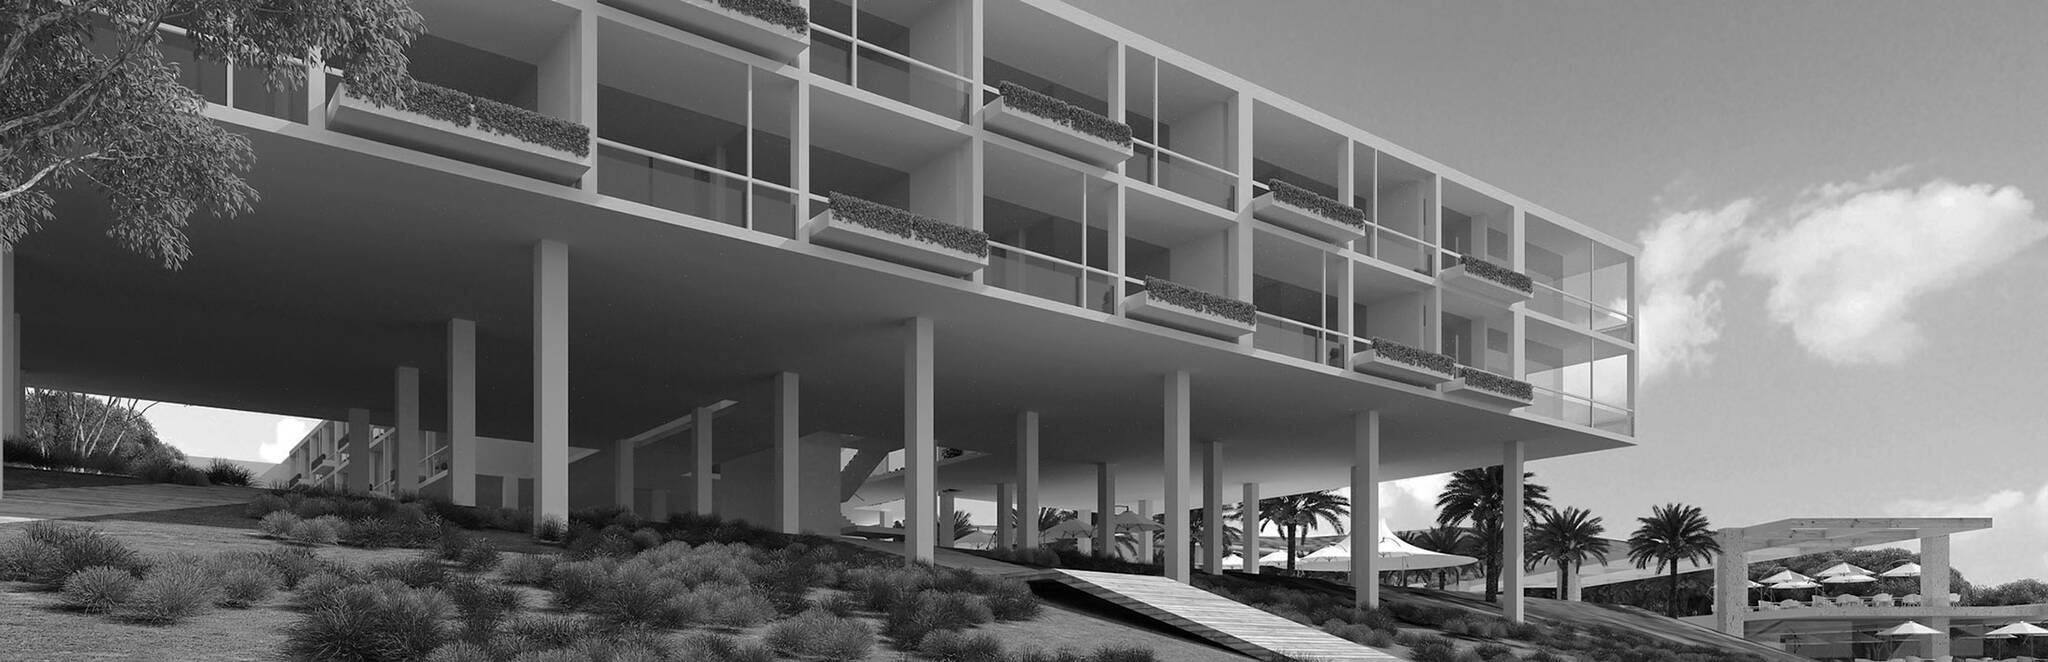 Panoramic view of one of the structures on the Nevisian Luxury Resort project designed by the architecture studio Danny Forster & Architecture. A luxury resort with restaurants, villas, spas, a conference center, and the world's first 5-star modular hotel located in Nevis island in the Lesser Antilles